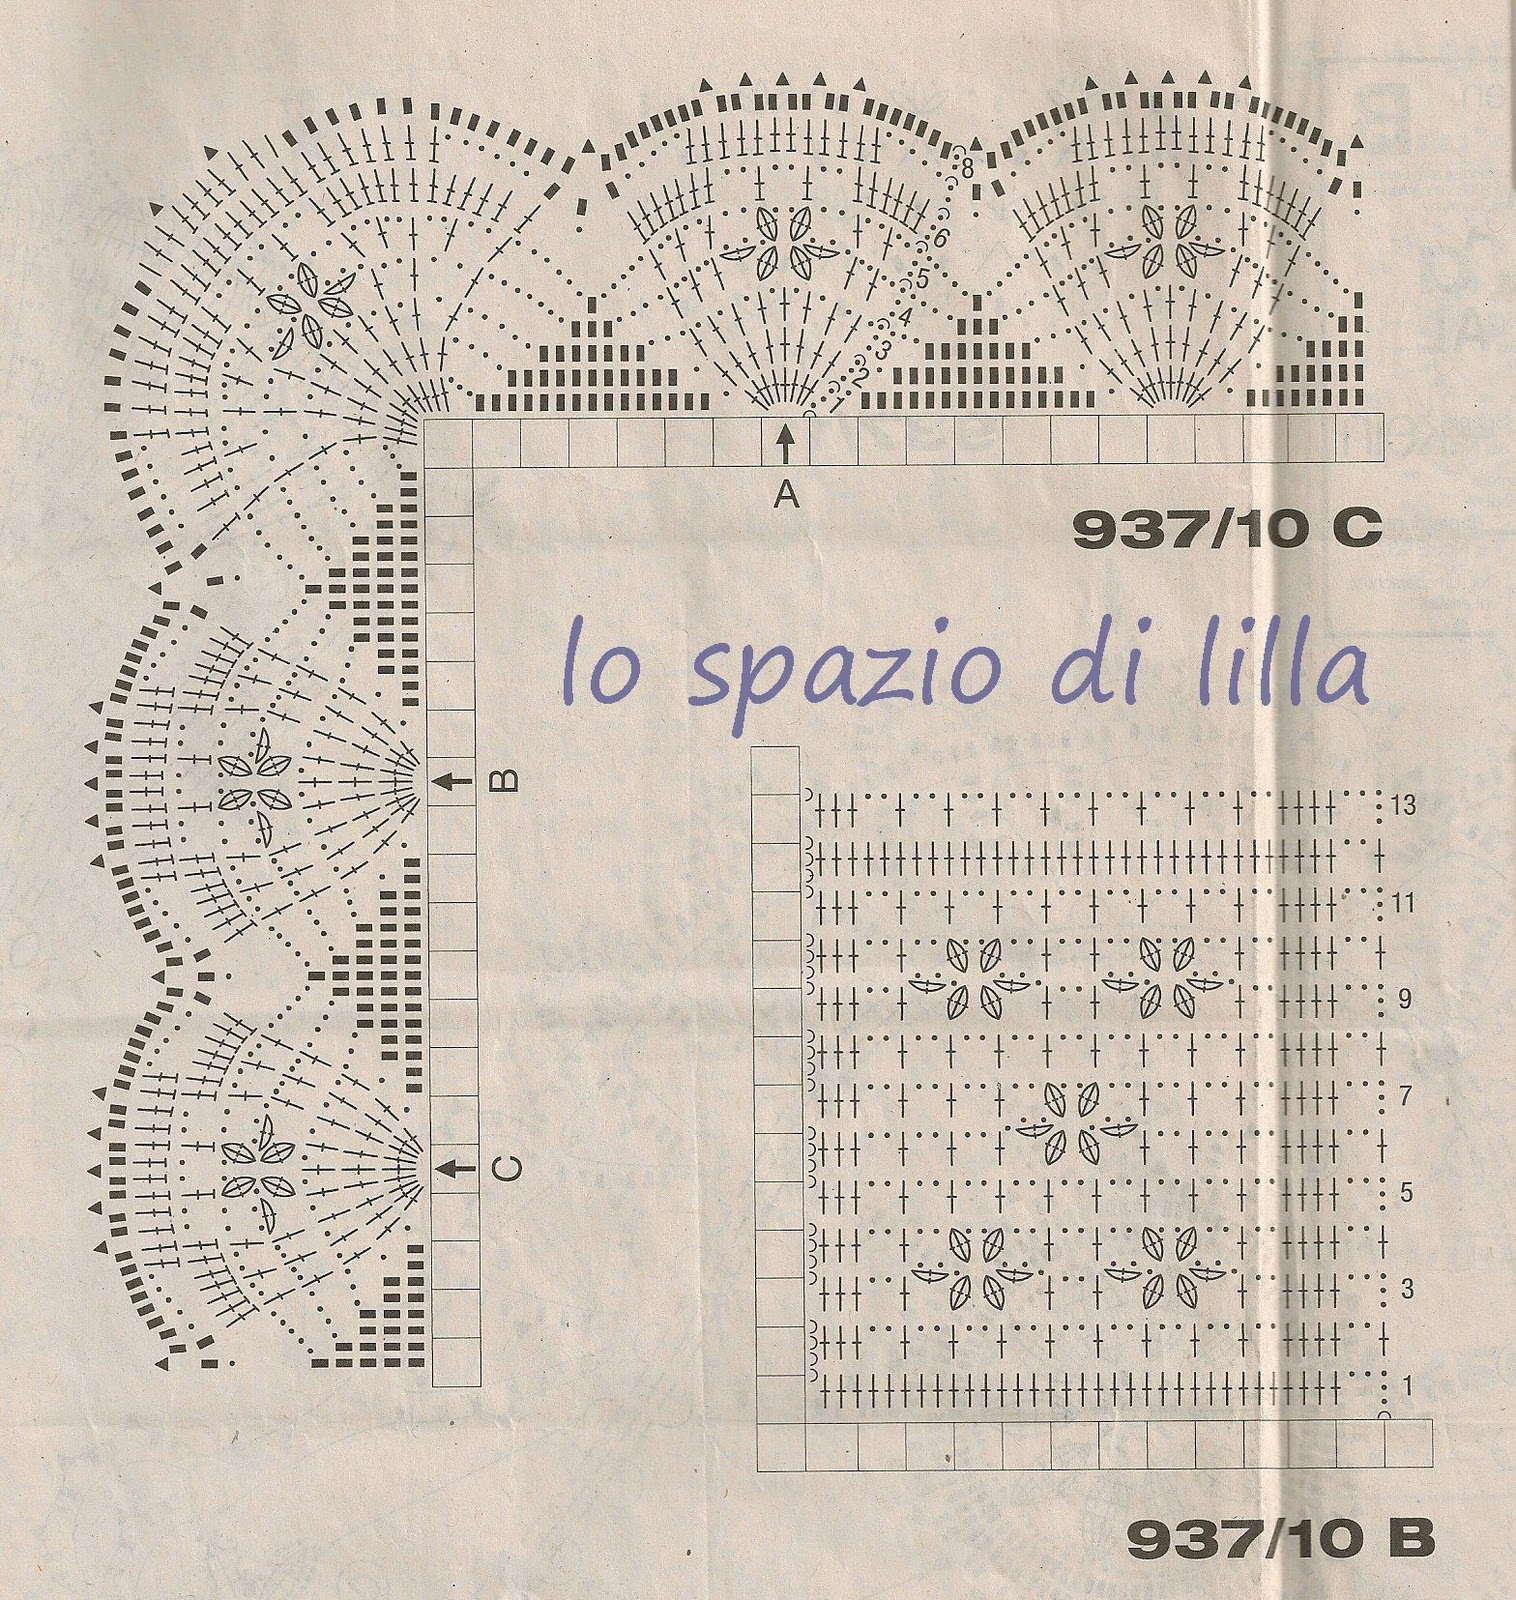 Lo spazio di lilla pizzi e bordure all 39 uncinetto da for Bordure per altare all uncinetto